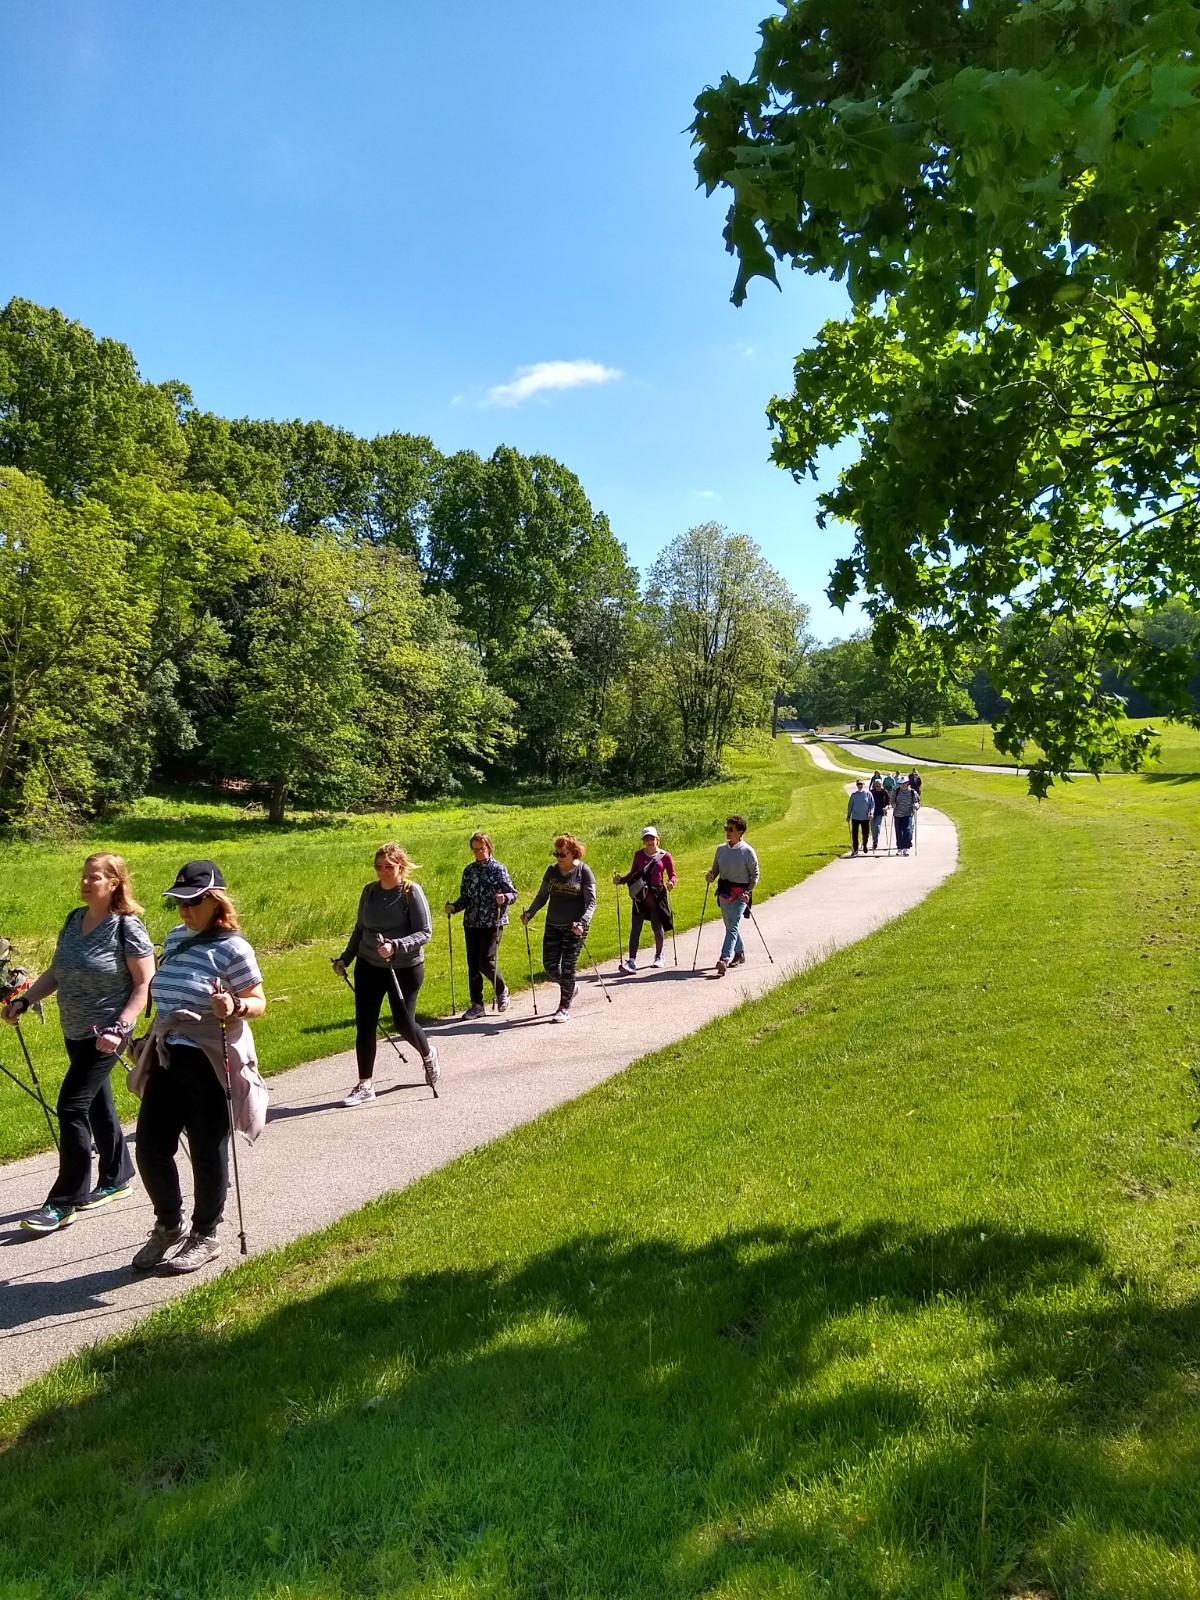 May 11, 2019 Valley Forge Park